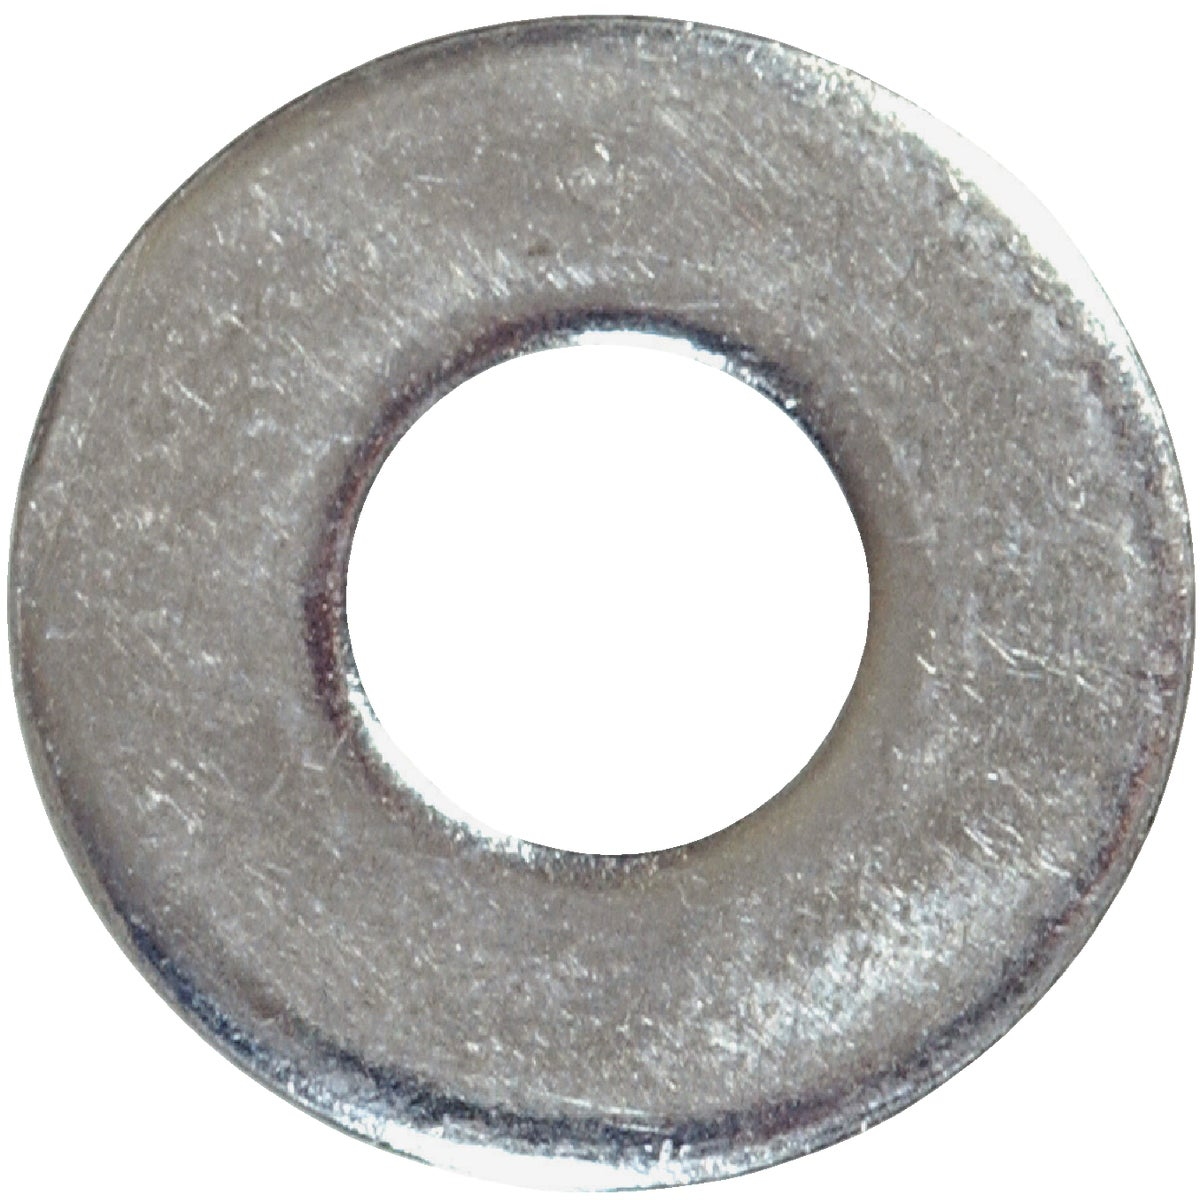 "50PC 1/2"" USS FLT WASHER - 270067 by Hillman Fastener"